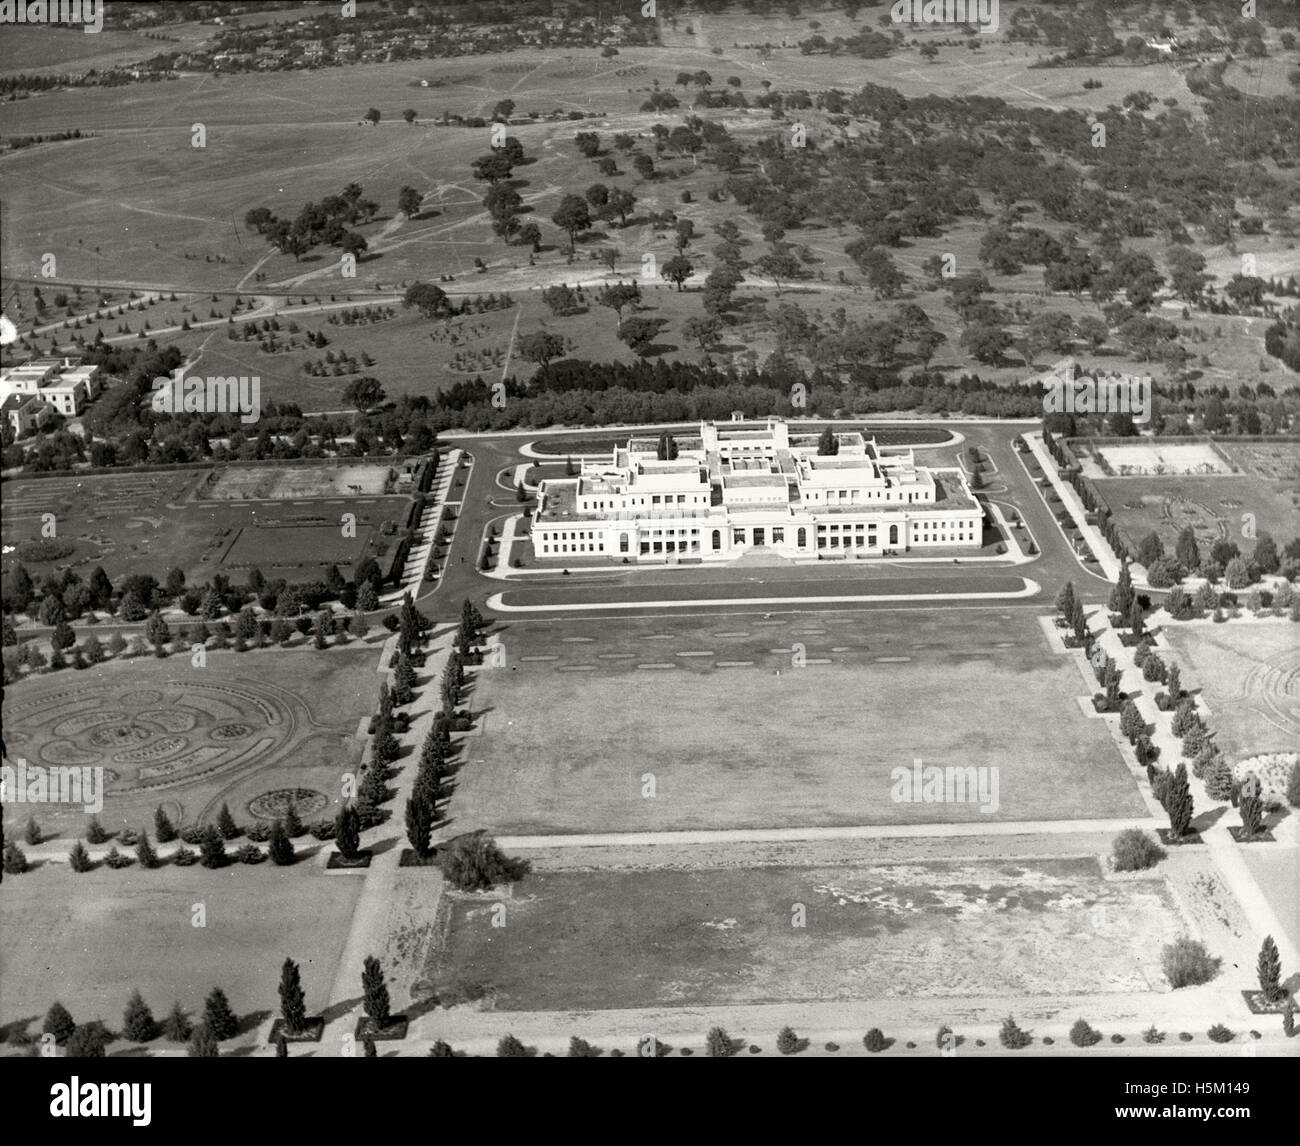 Parliament House, Canberra - 11th Mar 1937 - Stock Image